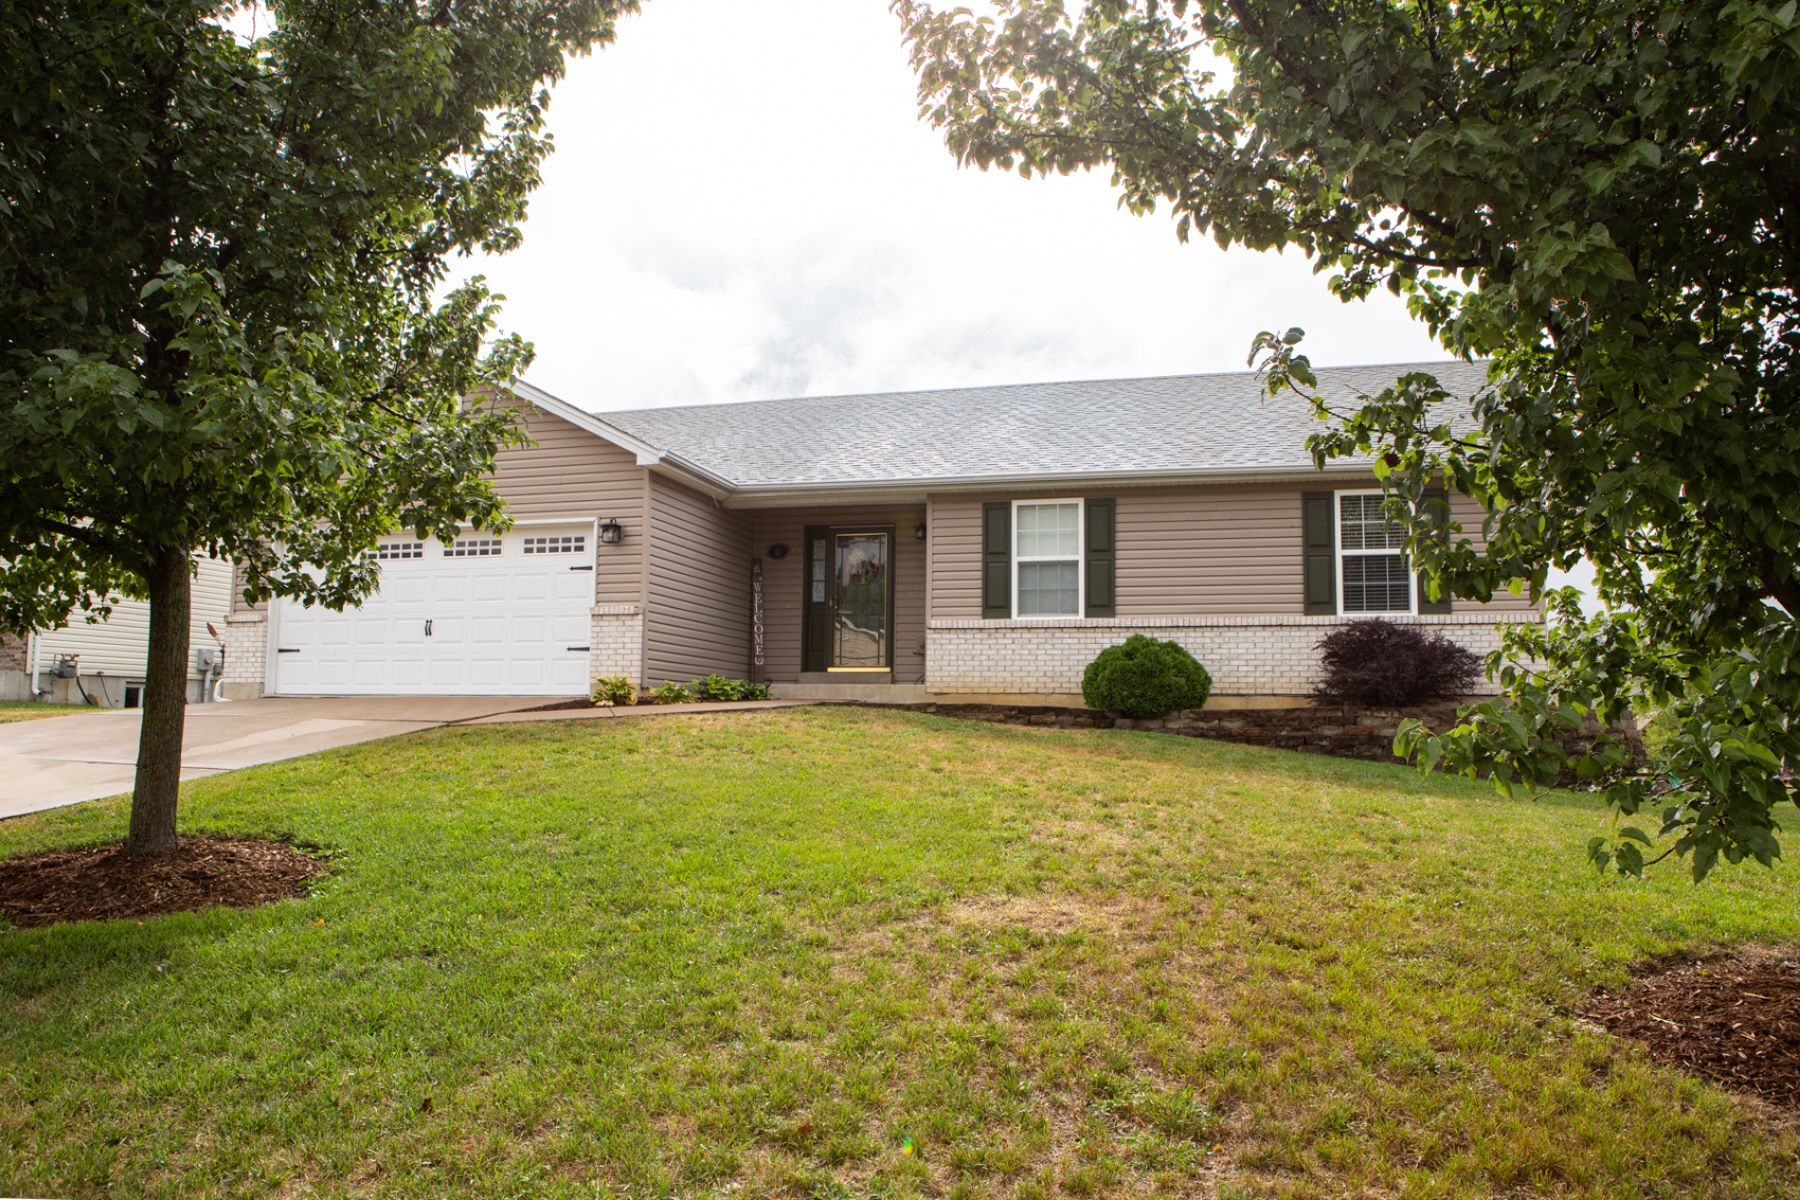 Single Family Home for Sale at Spring Hill Cir 21 Spring Hill Circle Wright City, Missouri 63390 United States